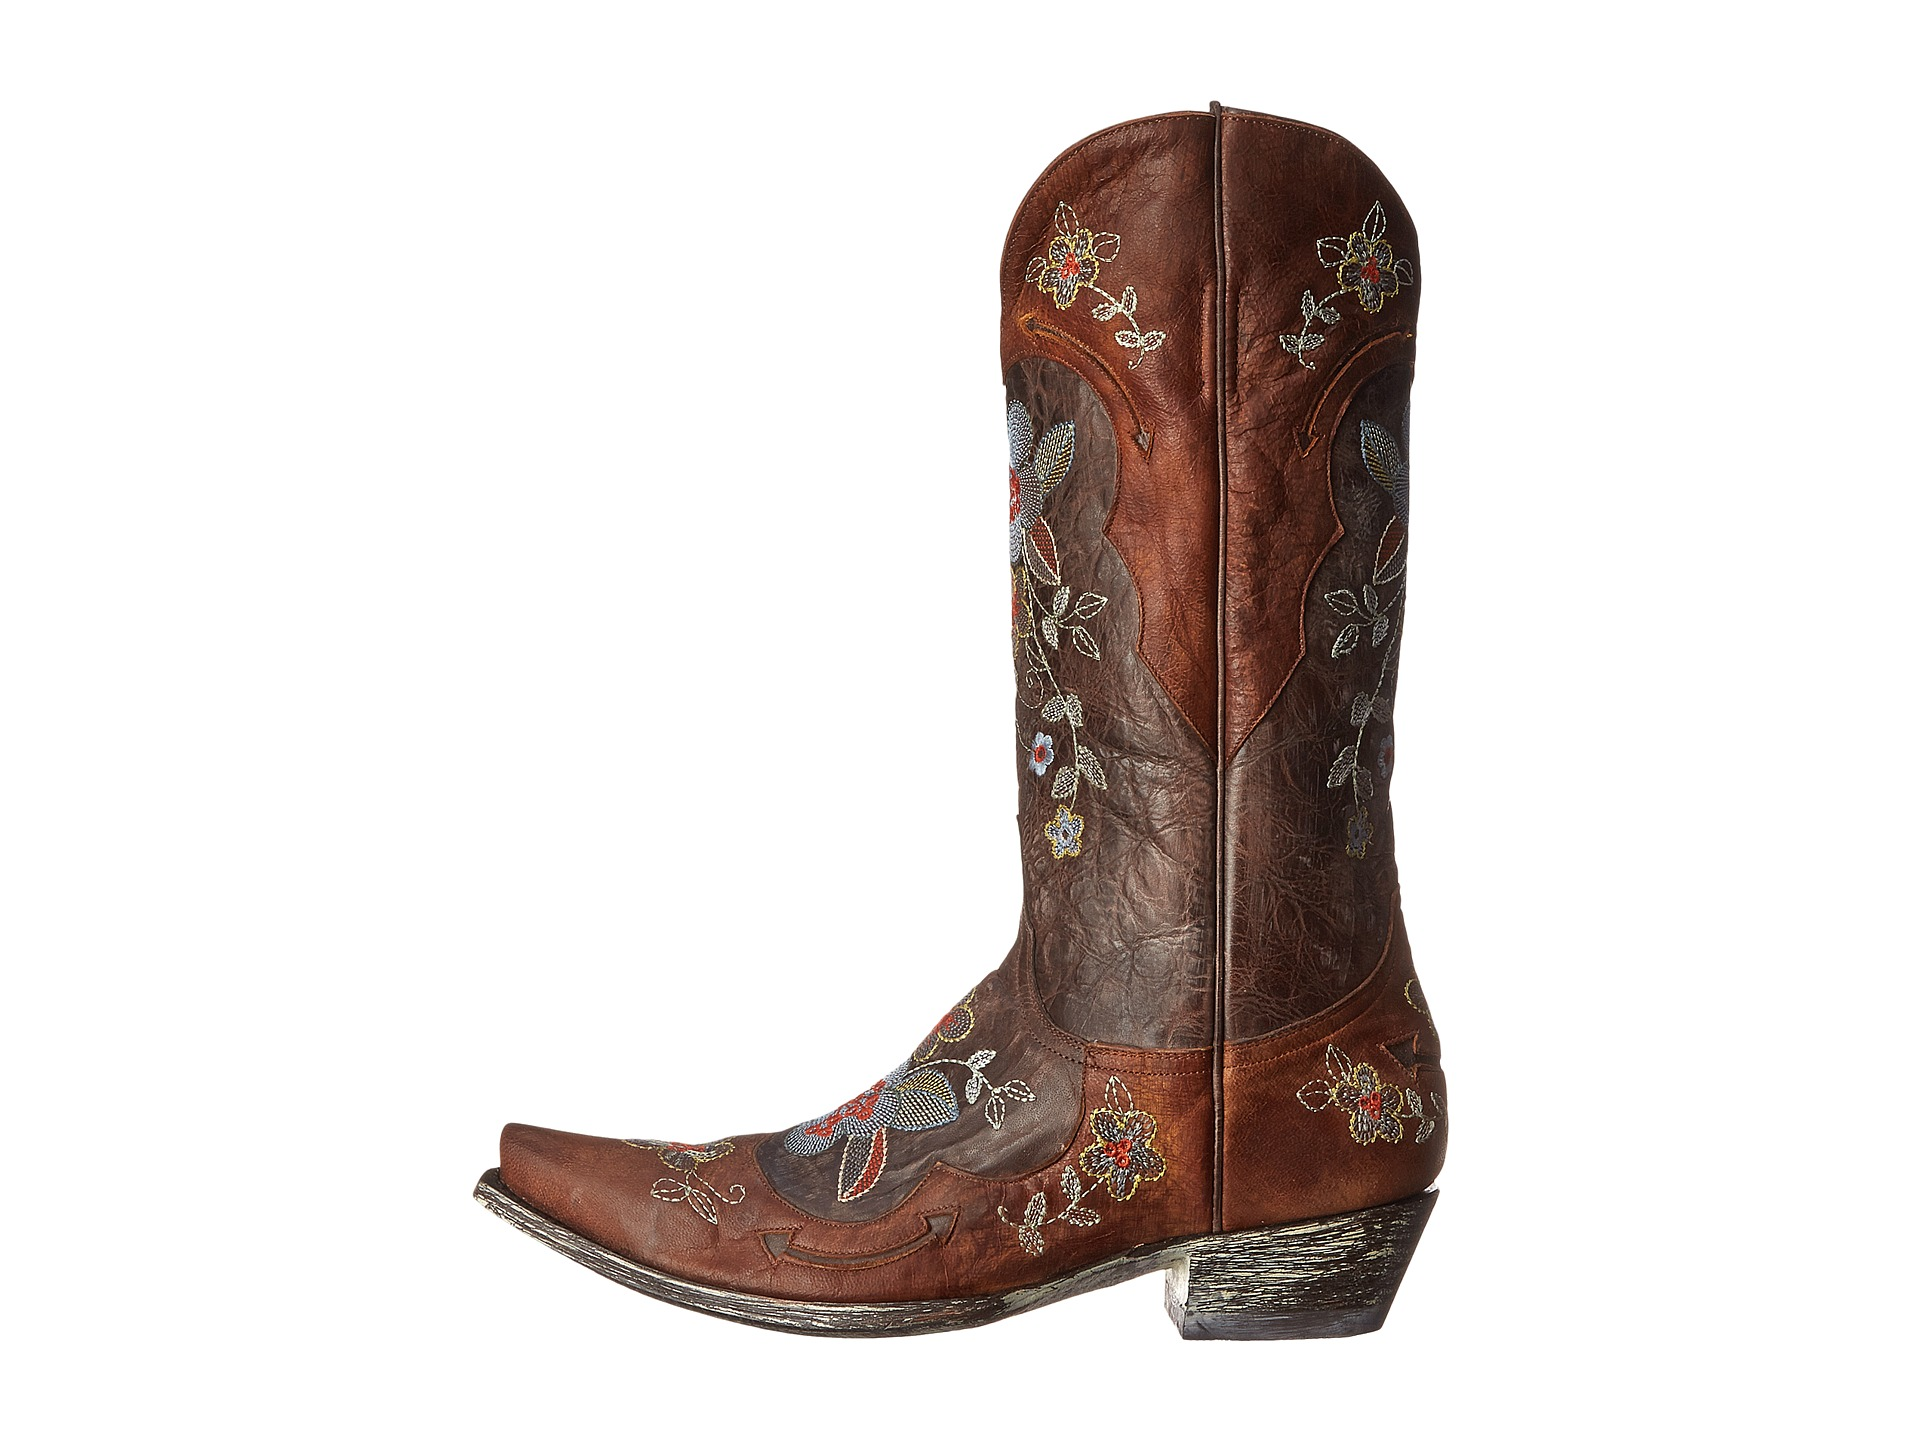 Zappos Old Gringo Women's Boots 48